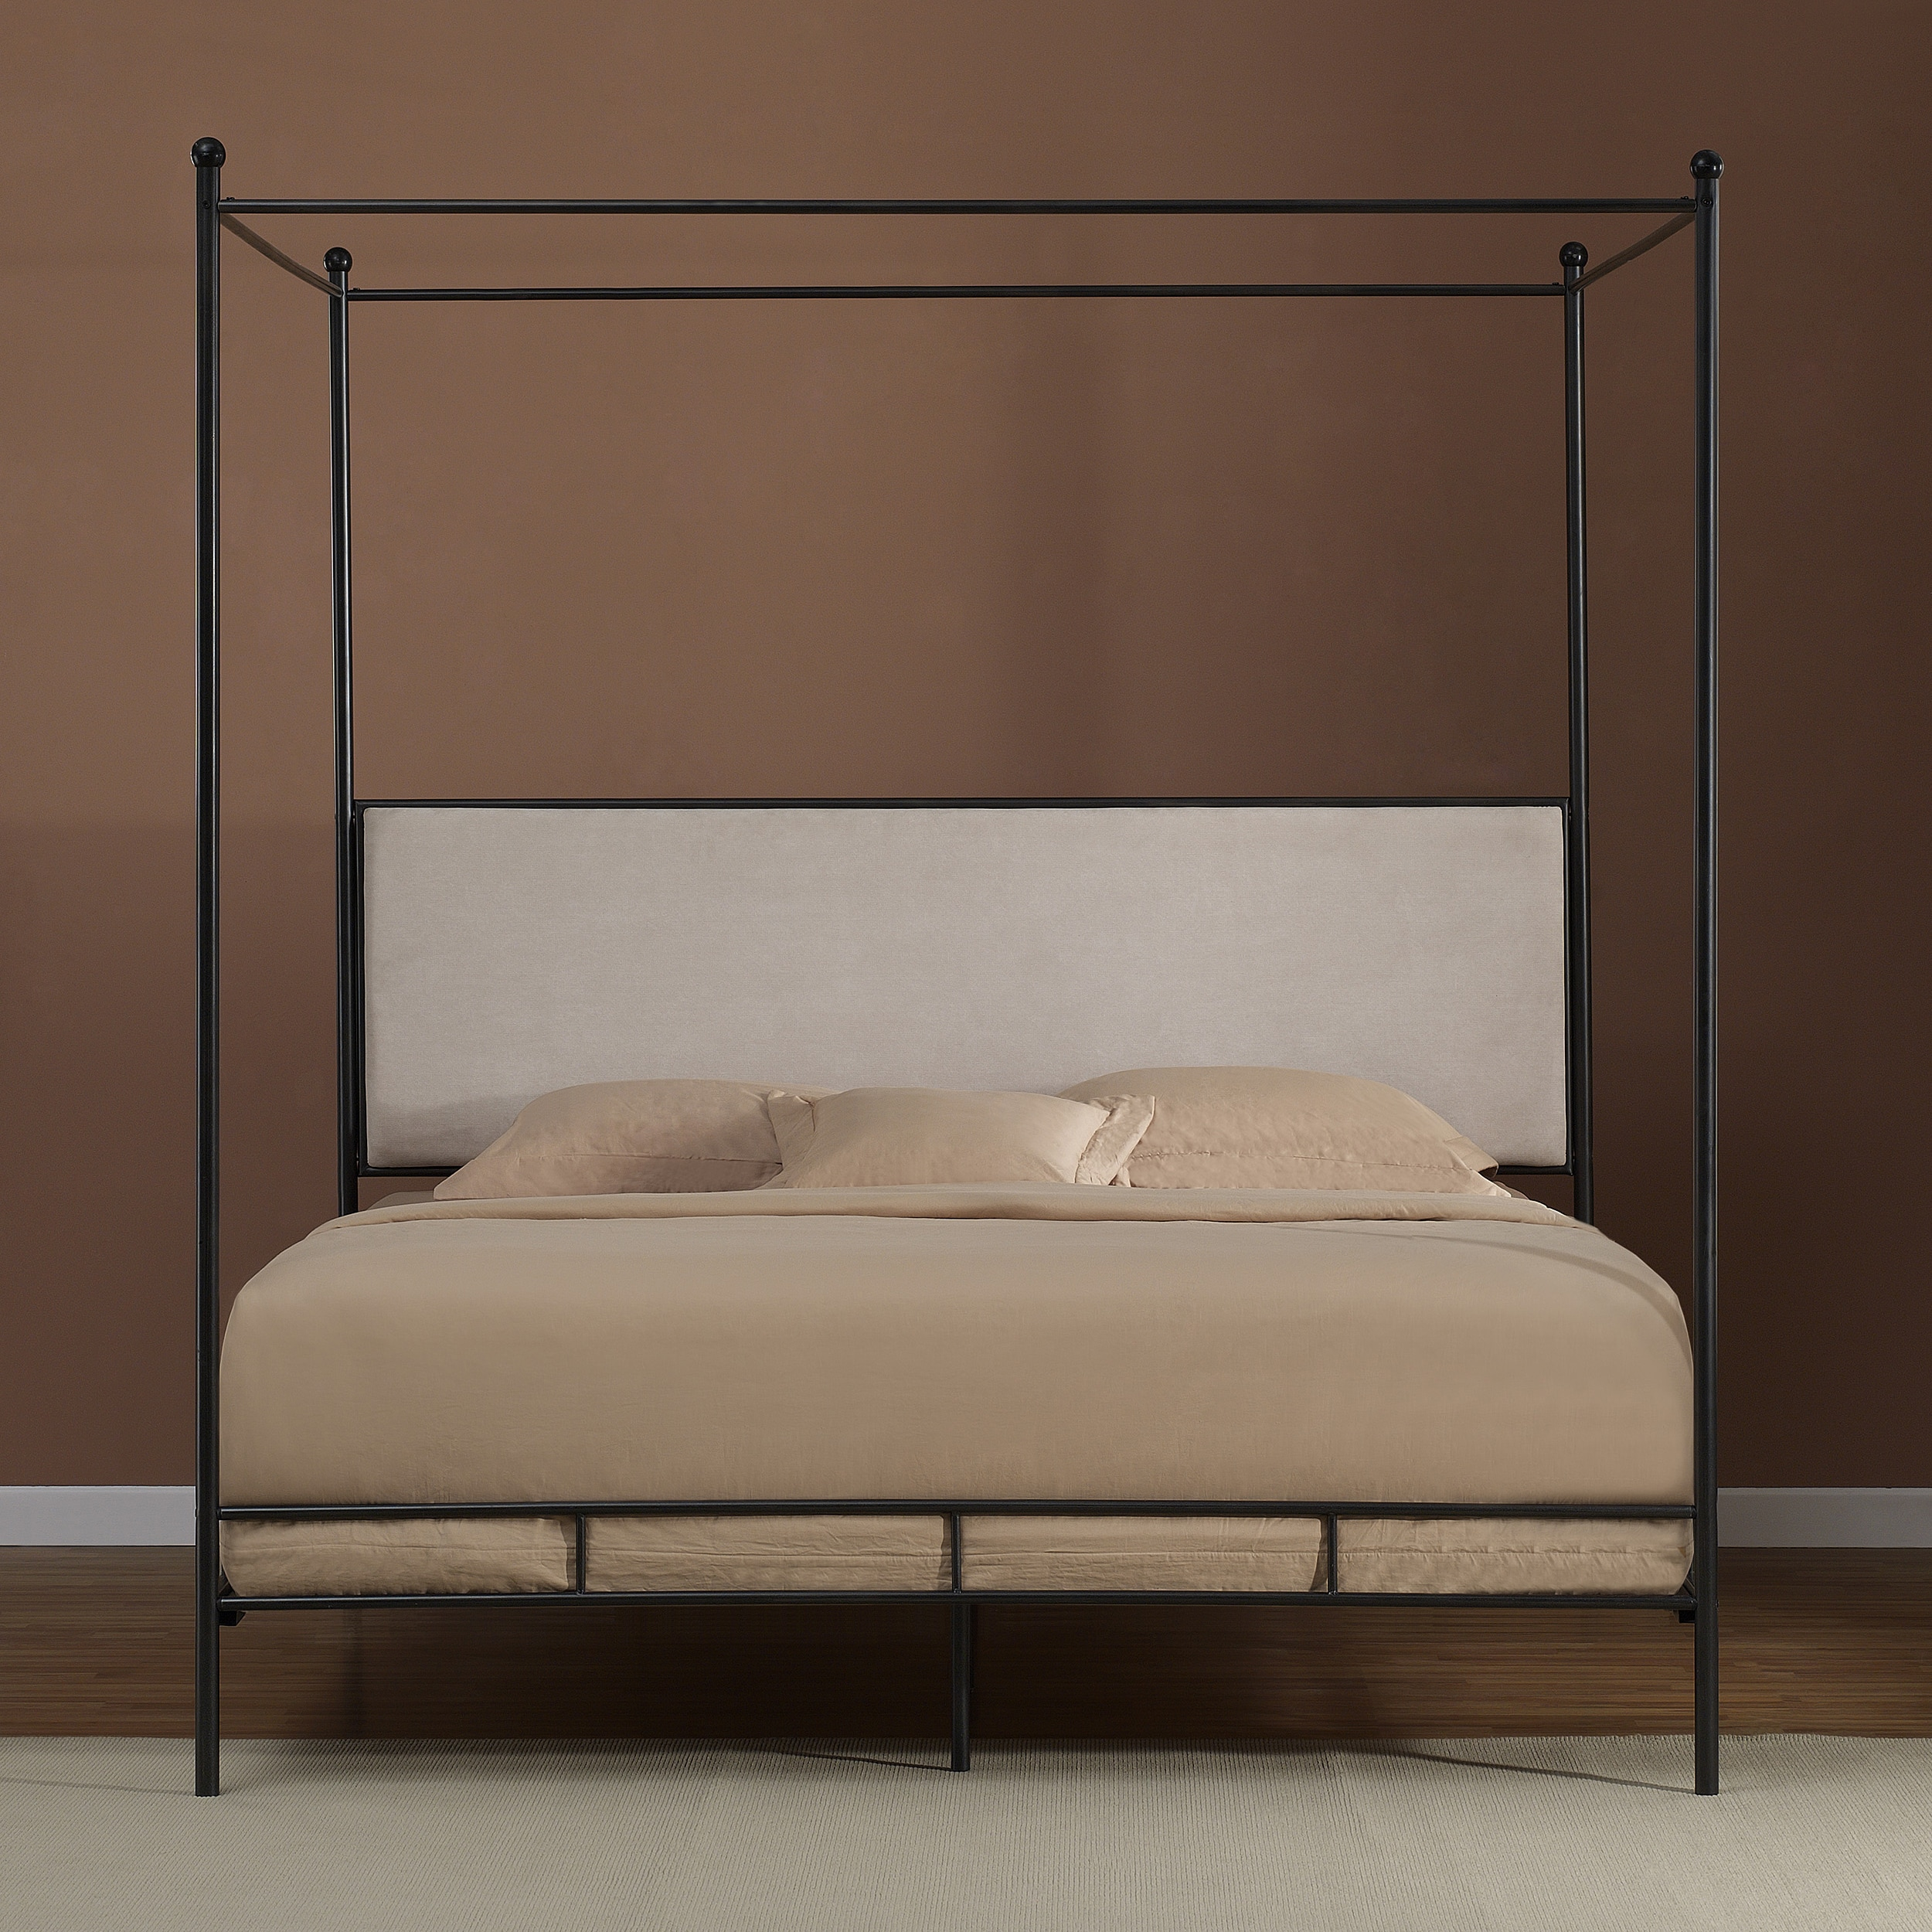 Lauren King Metal Canopy Bed - Free Shipping Today - Overstock.com - 80004622  sc 1 st  Overstock.com & Lauren King Metal Canopy Bed - Free Shipping Today - Overstock.com ...